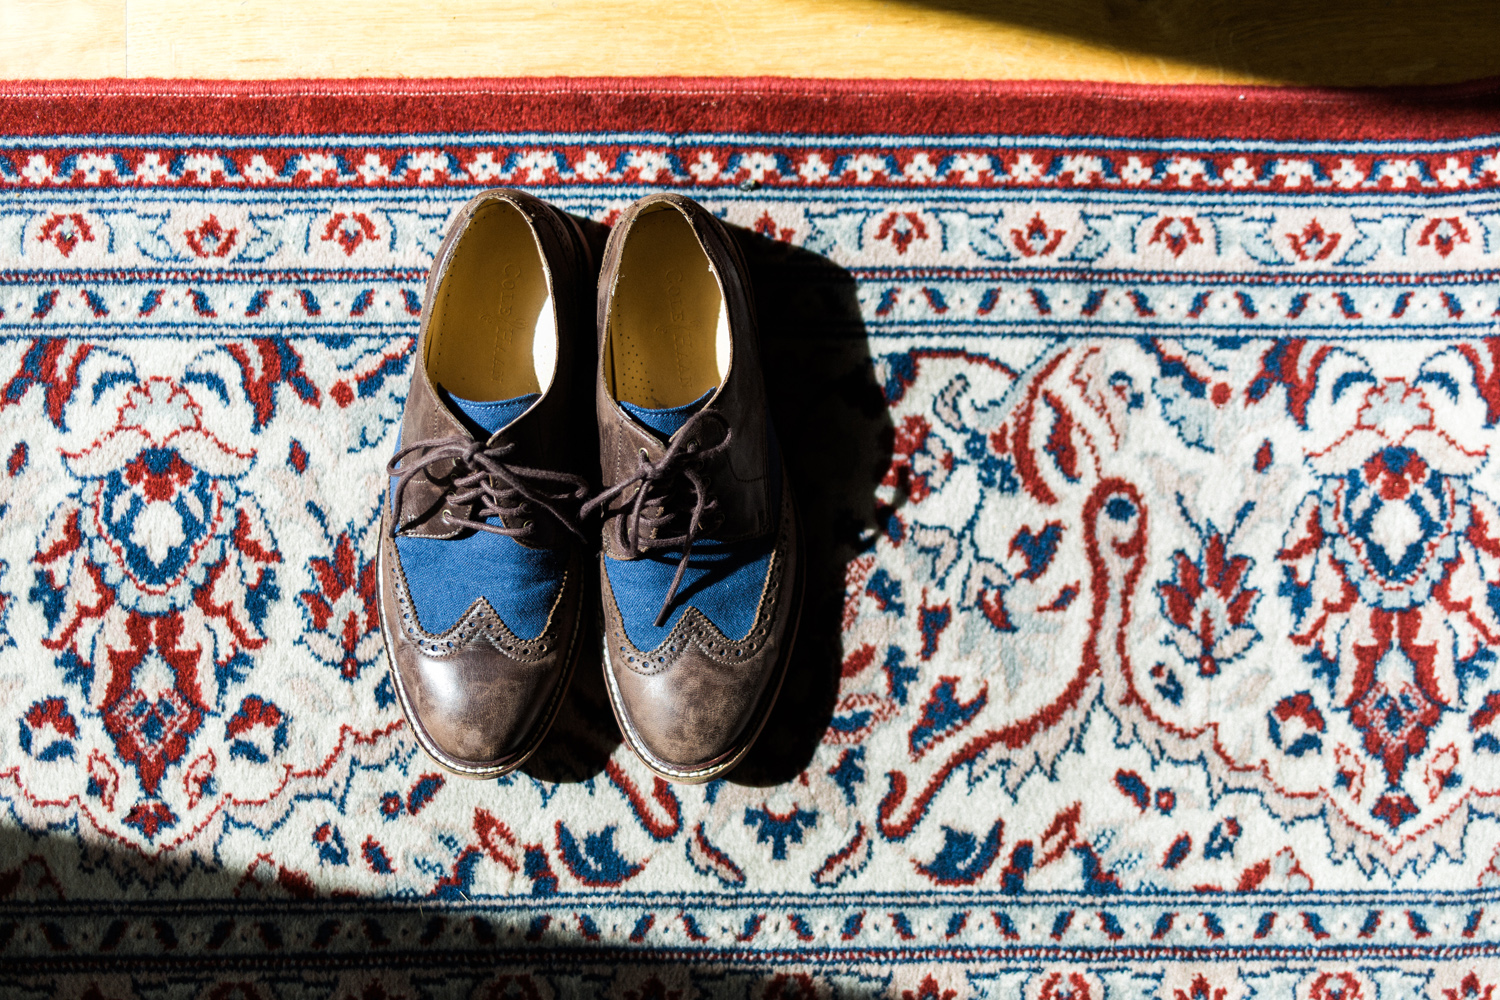 Blue and brown wedding shoes